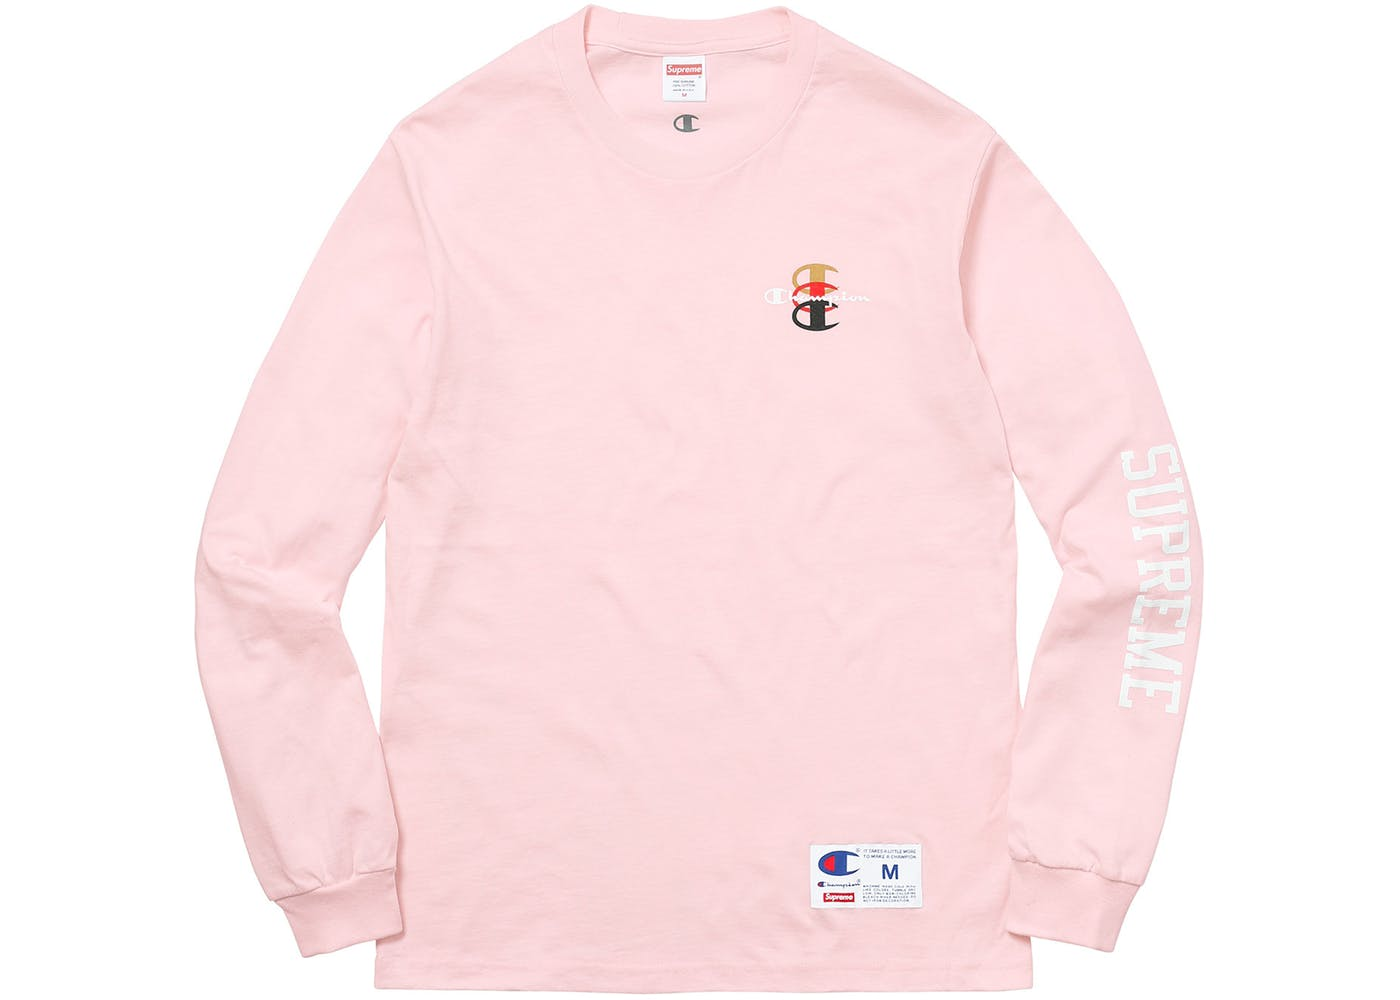 18c65fba47be Supreme Supreme Champion Stacked C Long Sleeve Tee Size xl - Long Sleeve  T-Shirts for Sale - Grailed